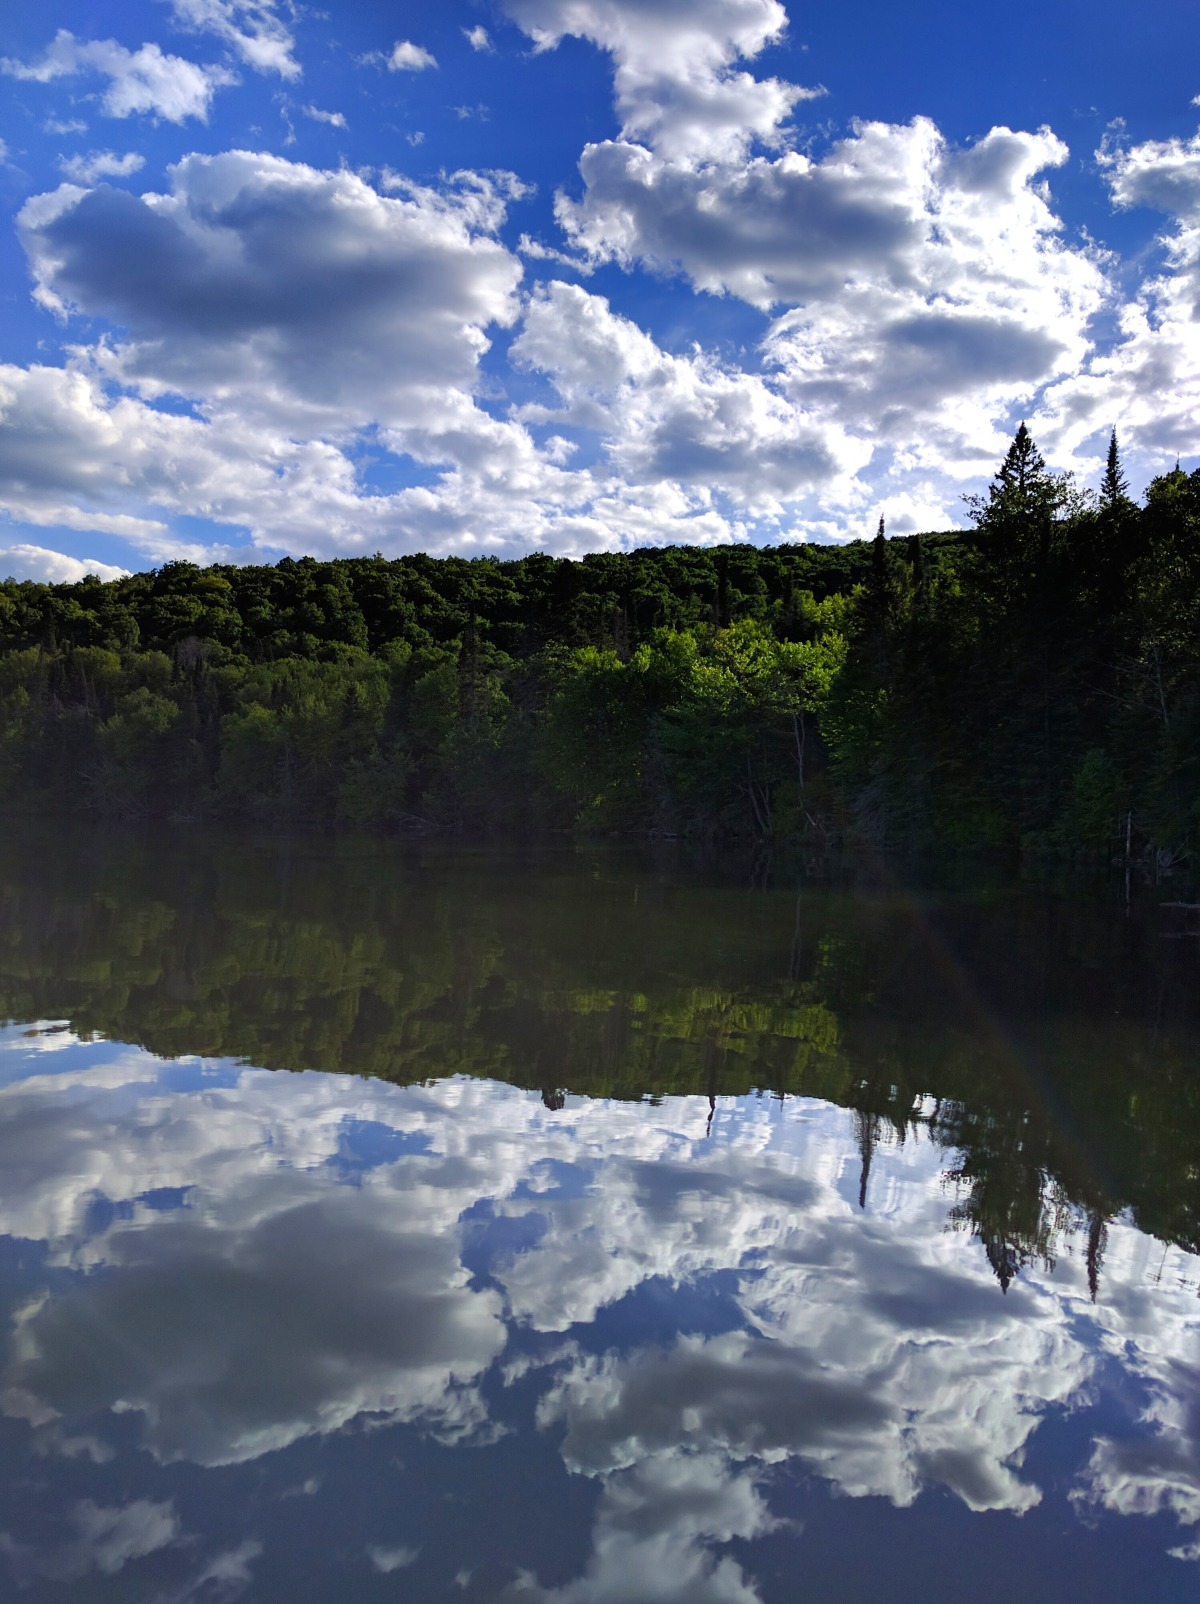 A typical view on the lake